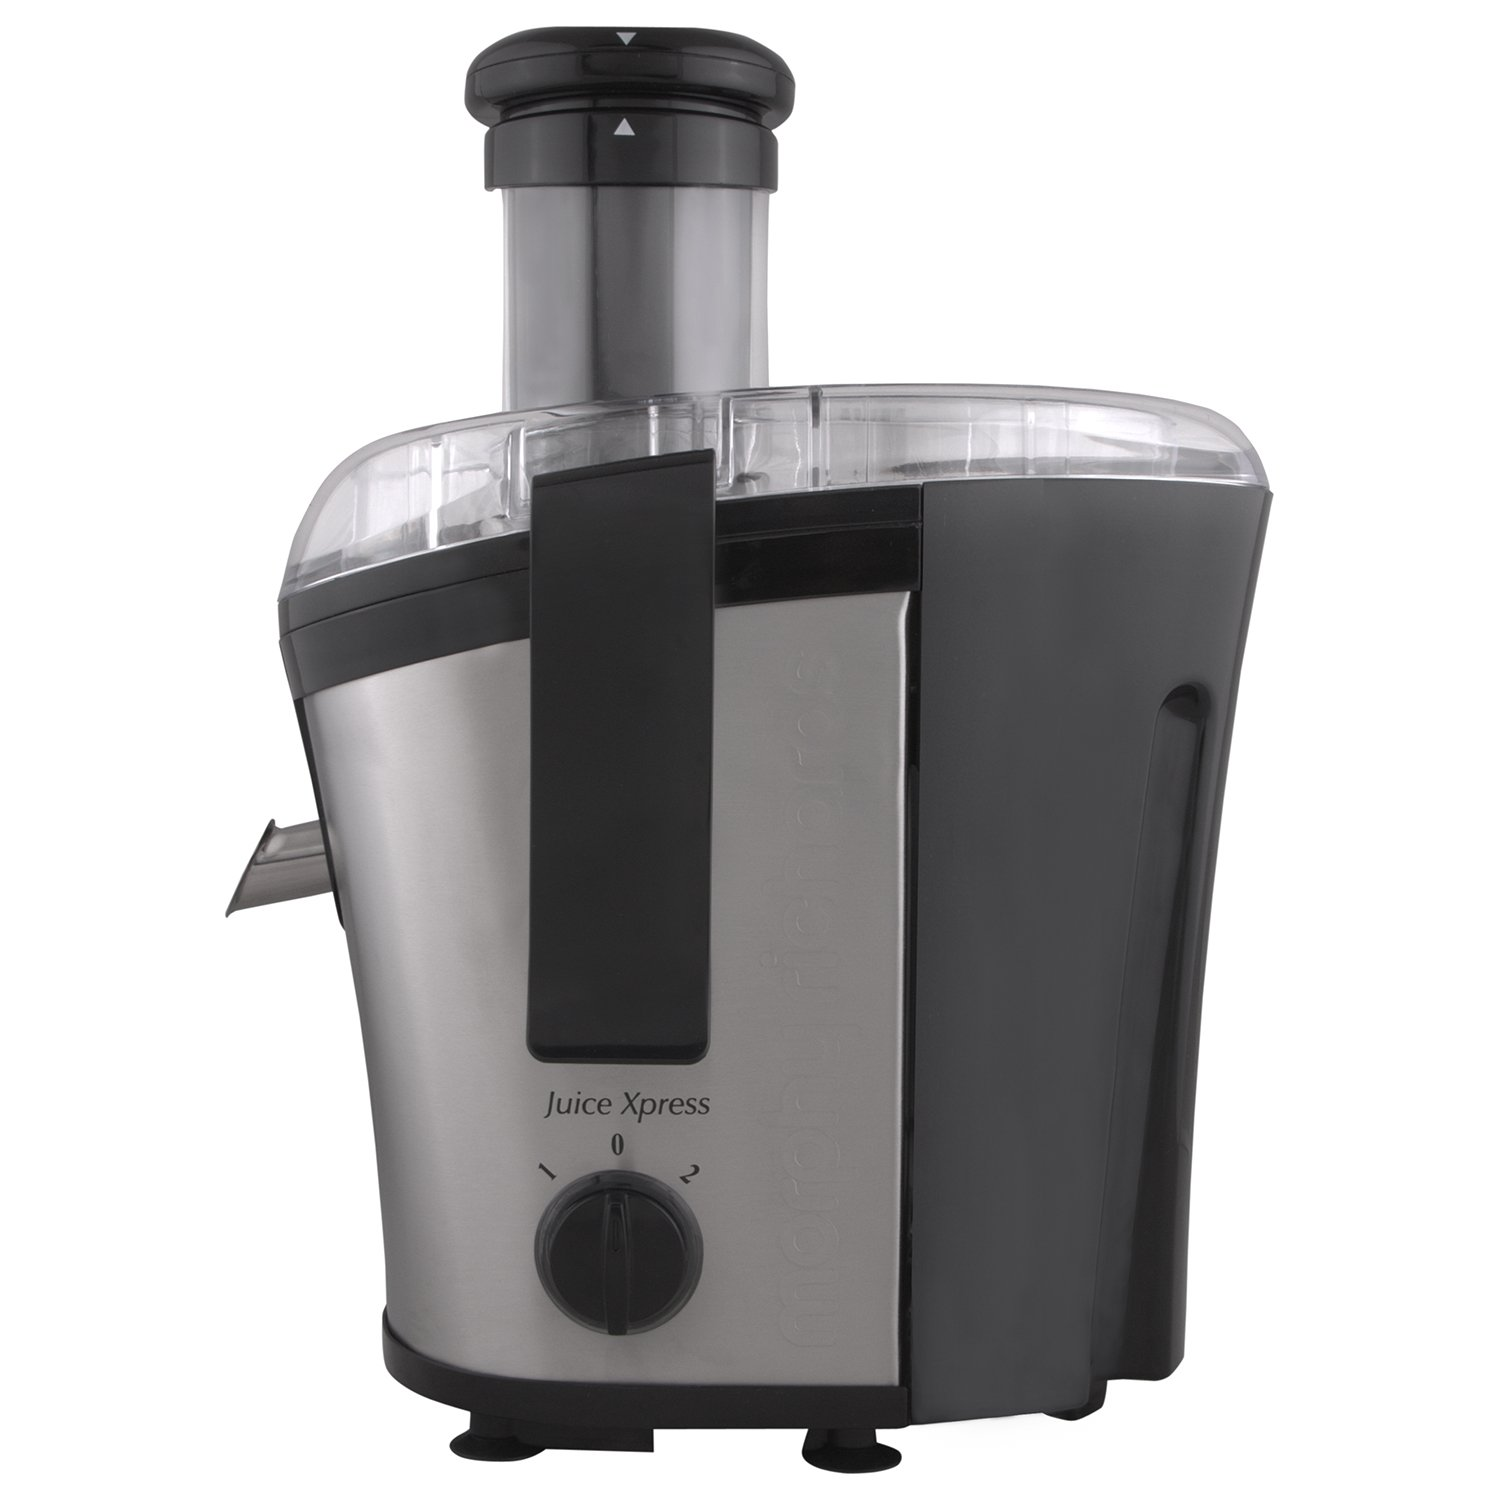 4. Morphy Richards Juice Xpress Juice